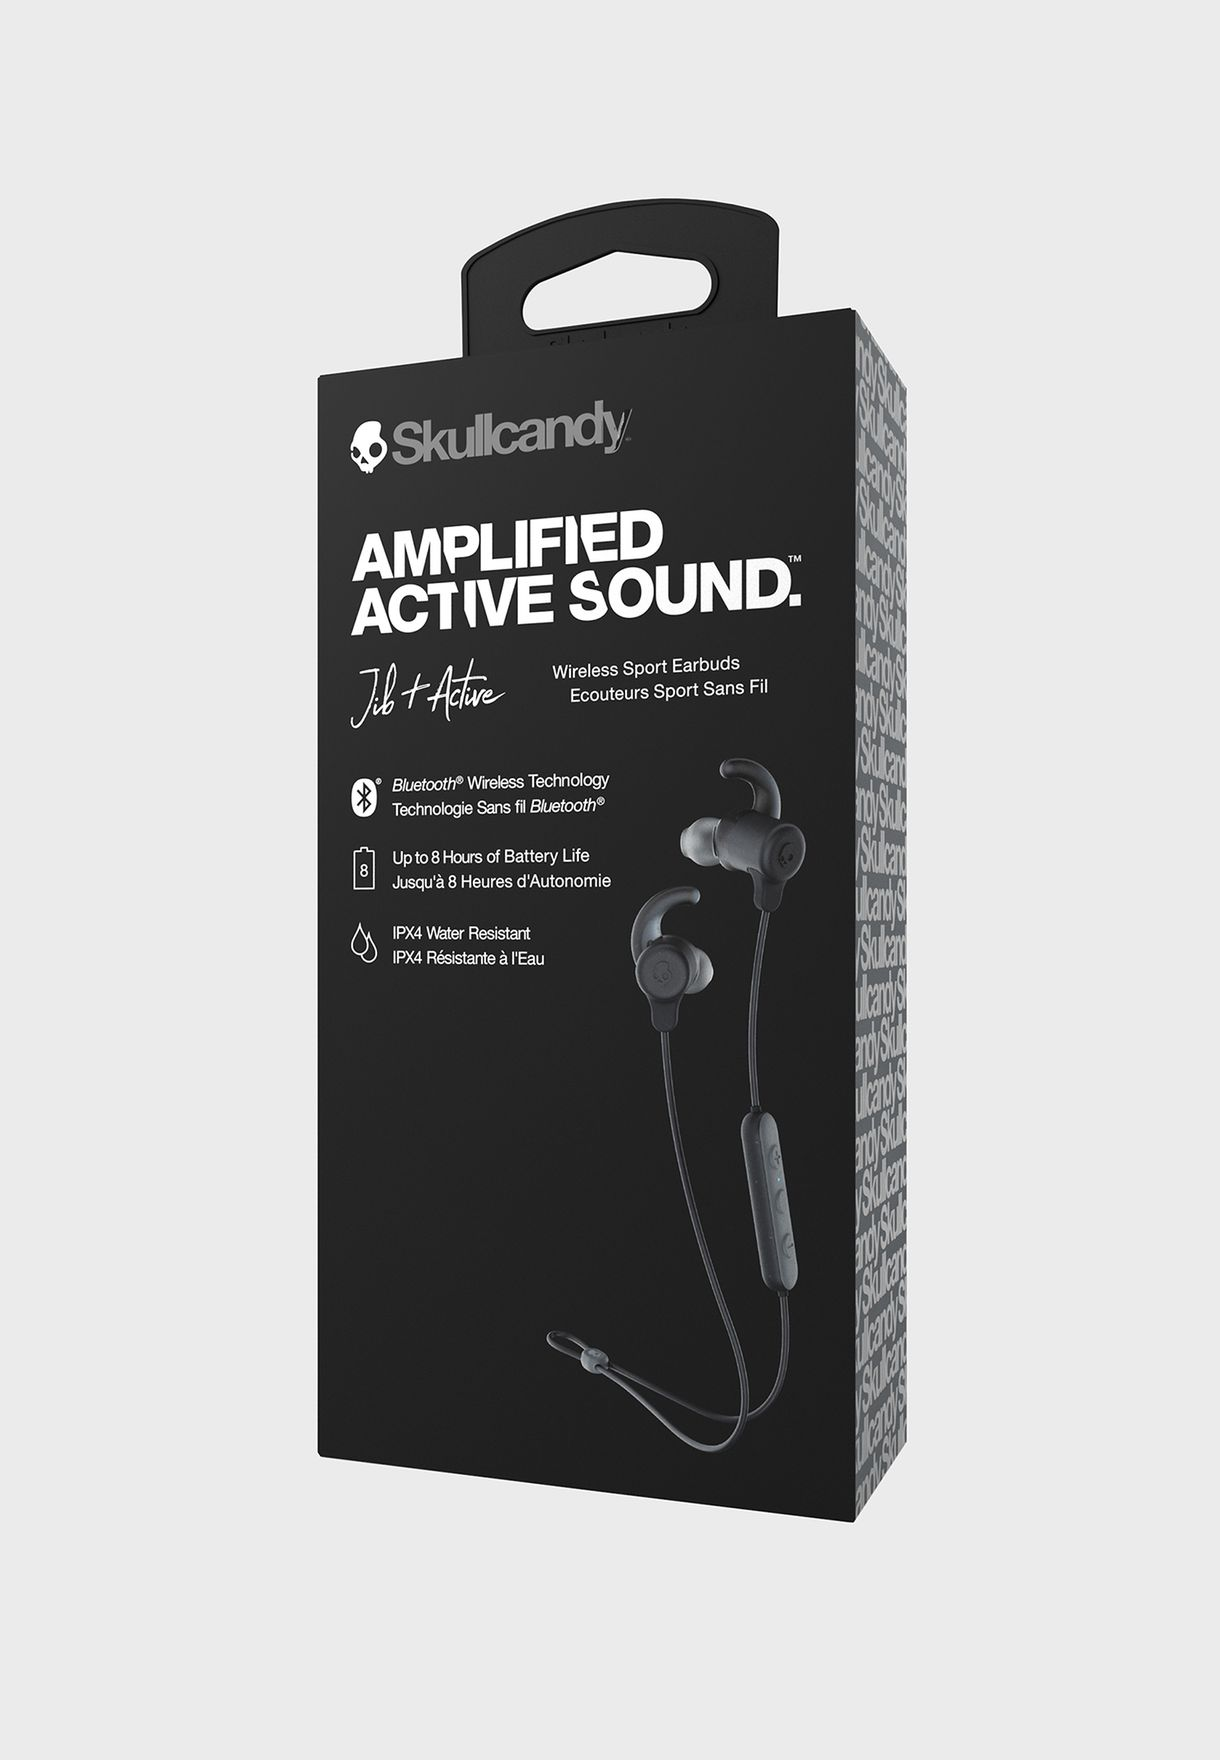 Jib+ Active Wireless In-Ear Earbuds With Microphone